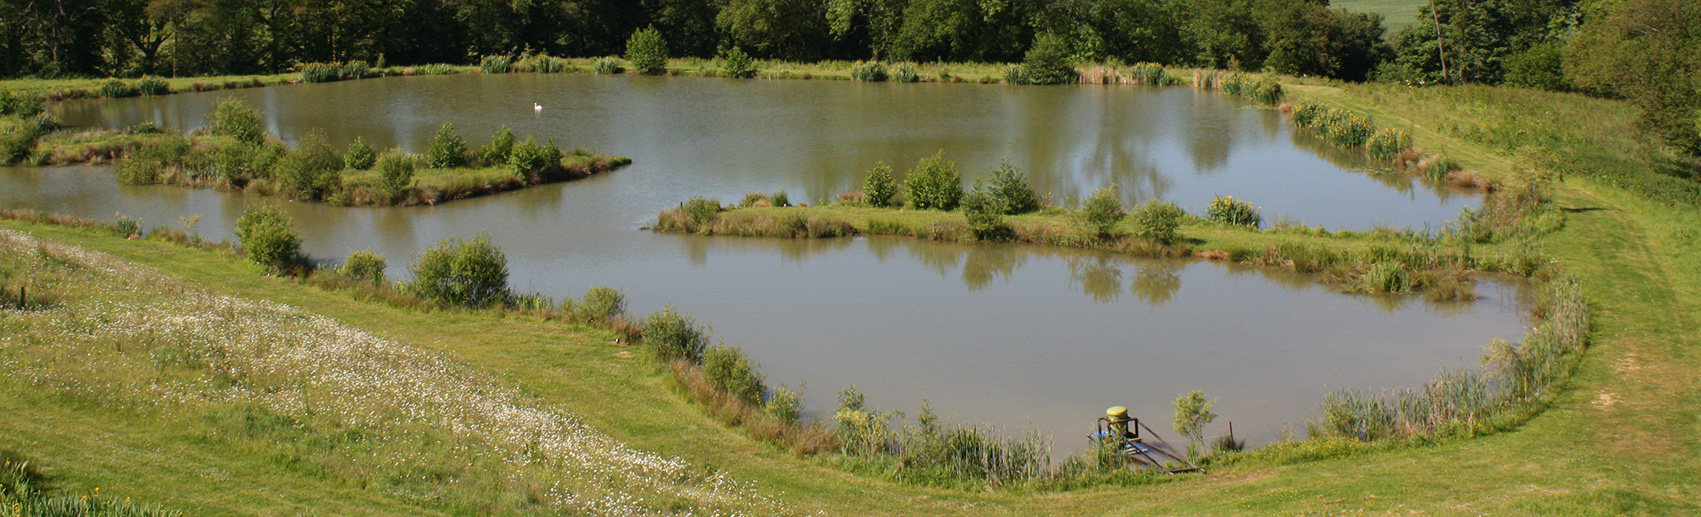 jennys fishing lake - newdigate farms estate